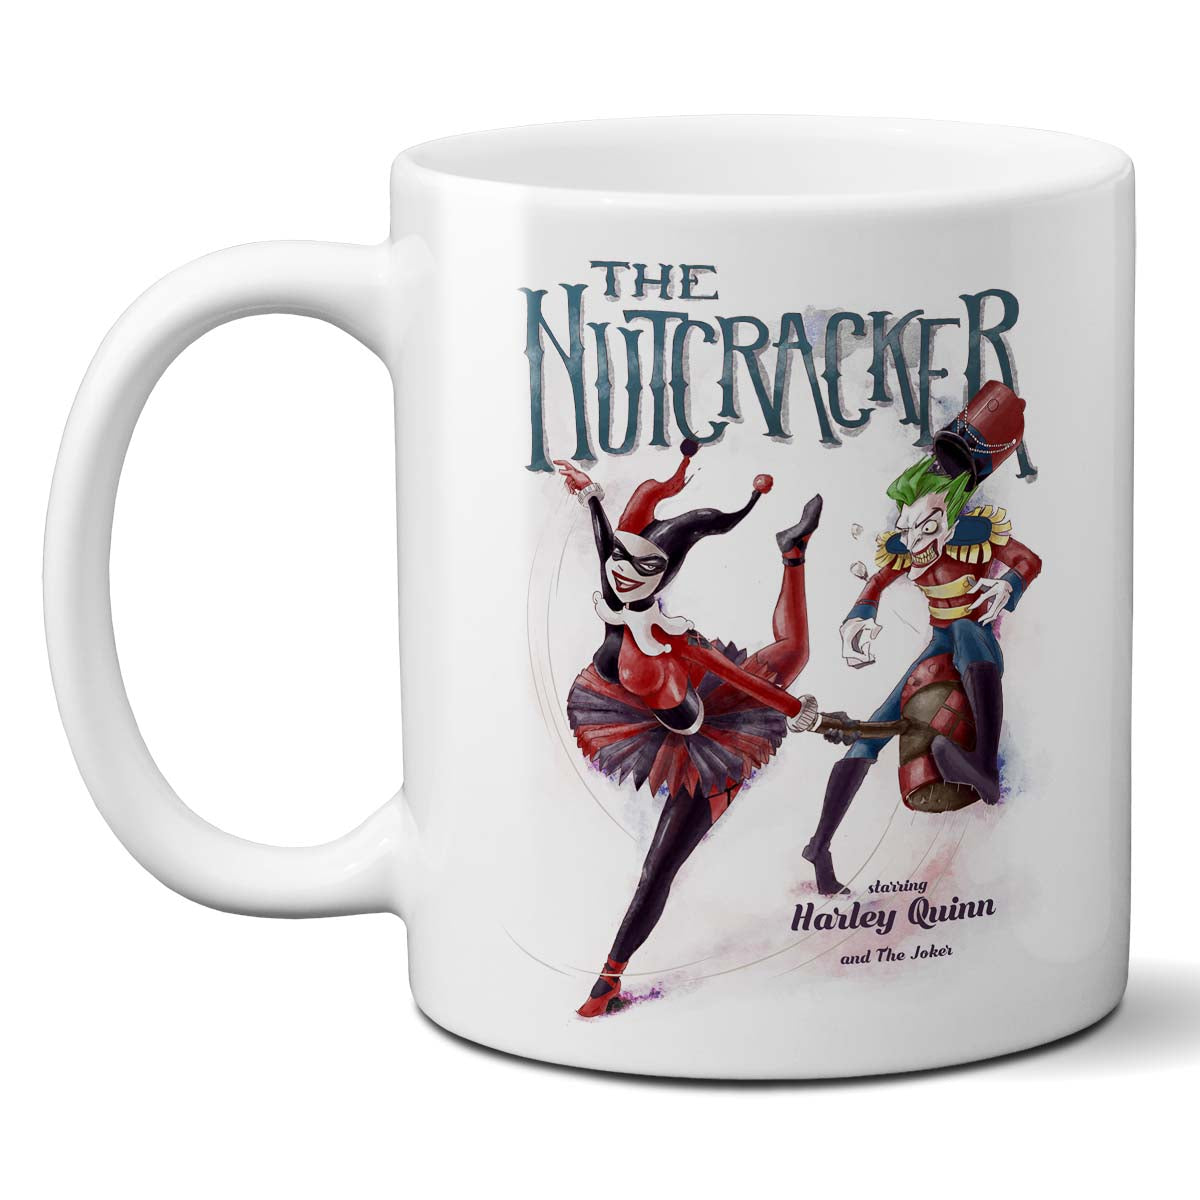 the nutcracker mug joker and harley quinn